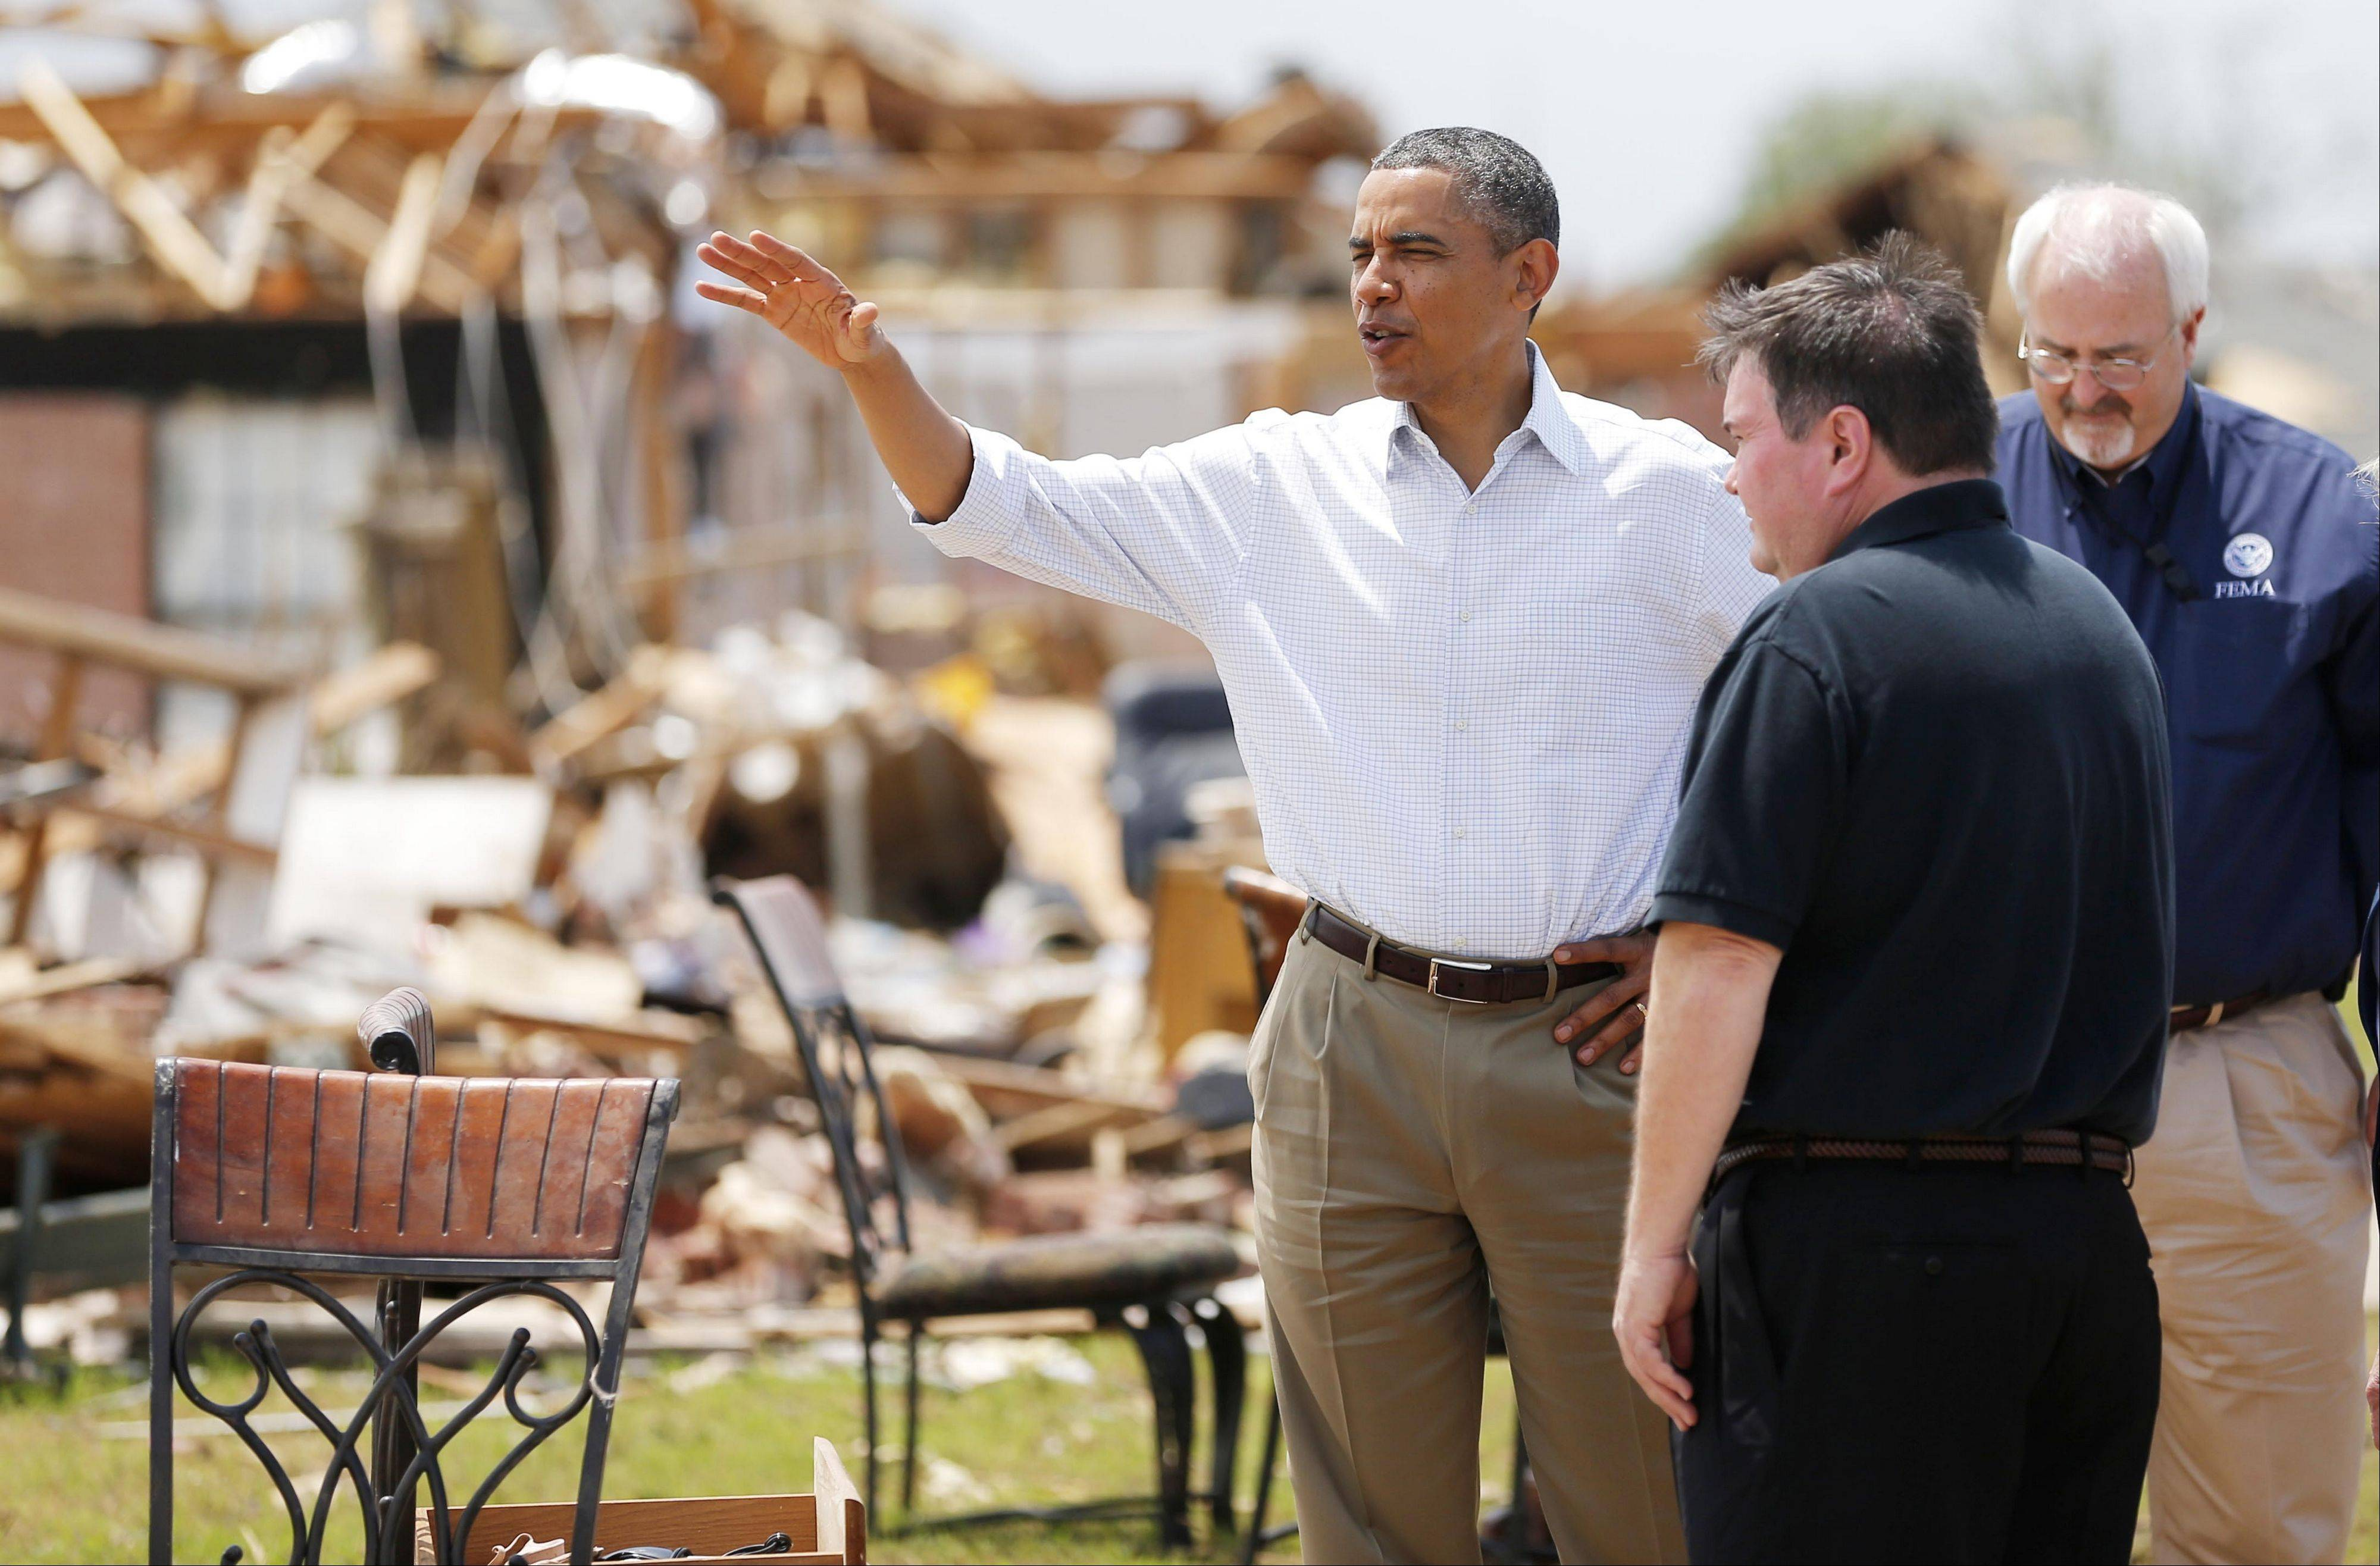 Associated Press President Barack Obama tours the Plaza Towers addition in Moore, Okla., beside Moore Mayor Glenn Lewis. In his 20 years as mayor of the Oklahoma City suburb, Lewis has already rebuilt his town twice, grappling with the aftermath of tornadoes so enormous the probability they strike is barely 2 percent. Yet Moore has been slammed by EF5 tornadoes, the largest on the rating scale, twice.